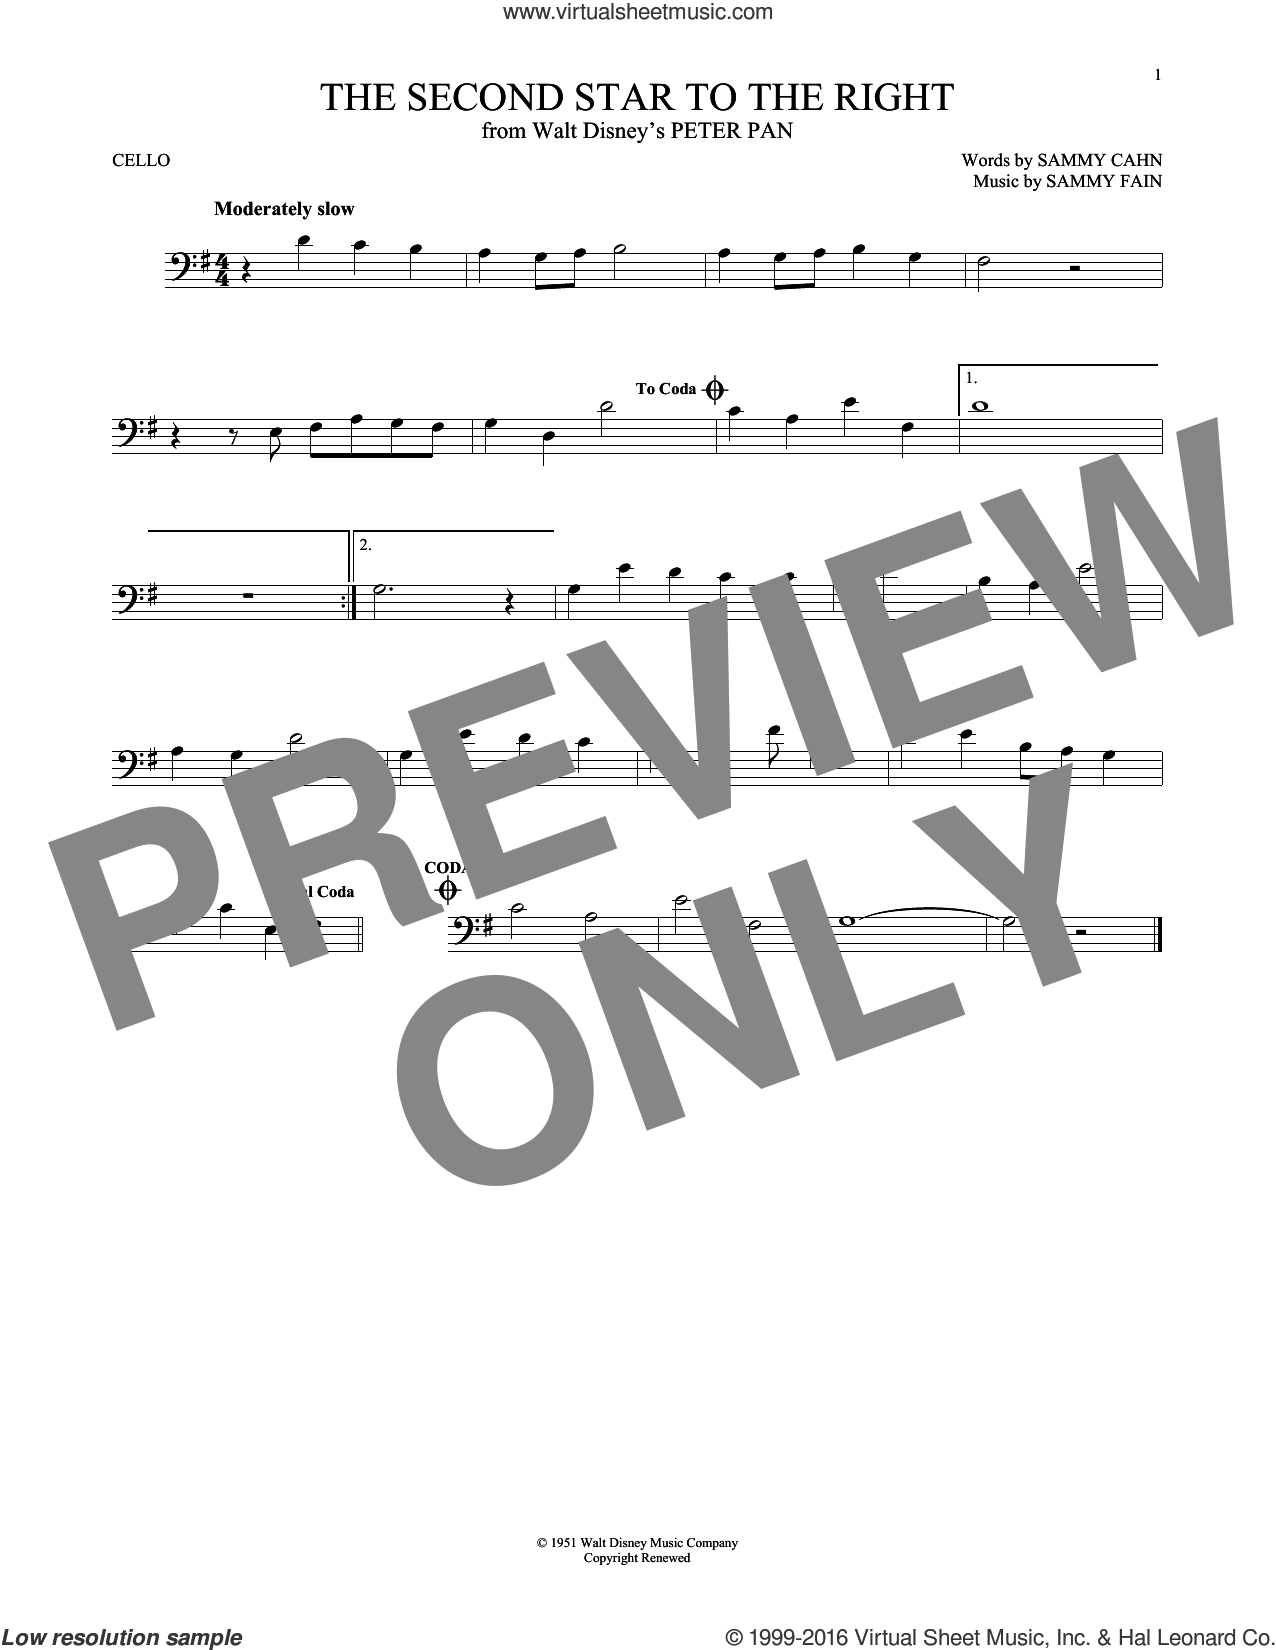 The Second Star To The Right sheet music for cello solo by Sammy Cahn and Sammy Fain, classical score, intermediate skill level